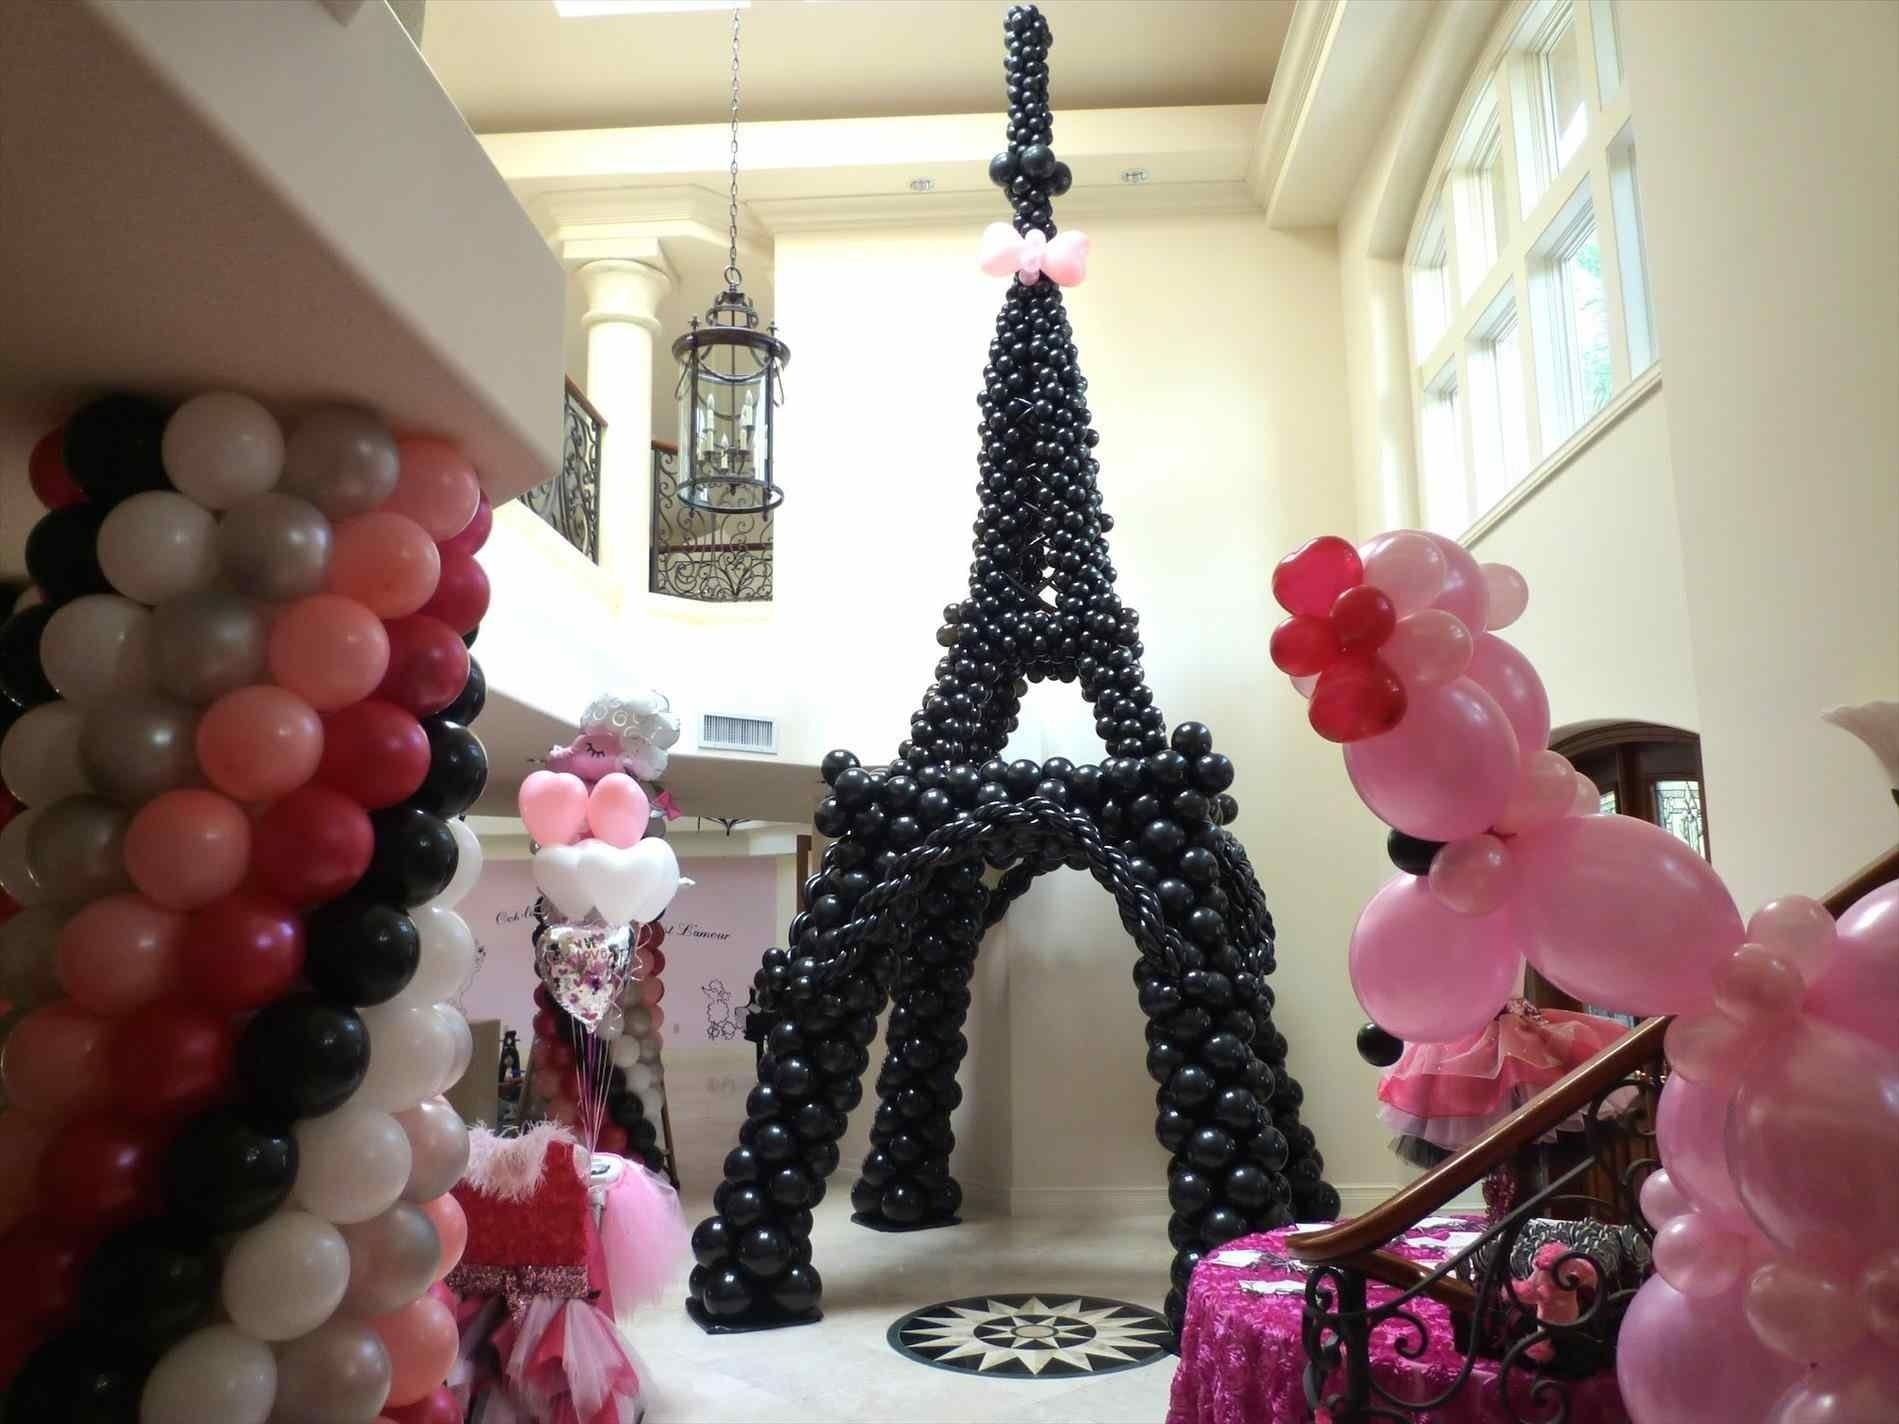 10 Unique Ideas For 15Th Birthday Party 15th birthday party decoration ideas siudy 2020